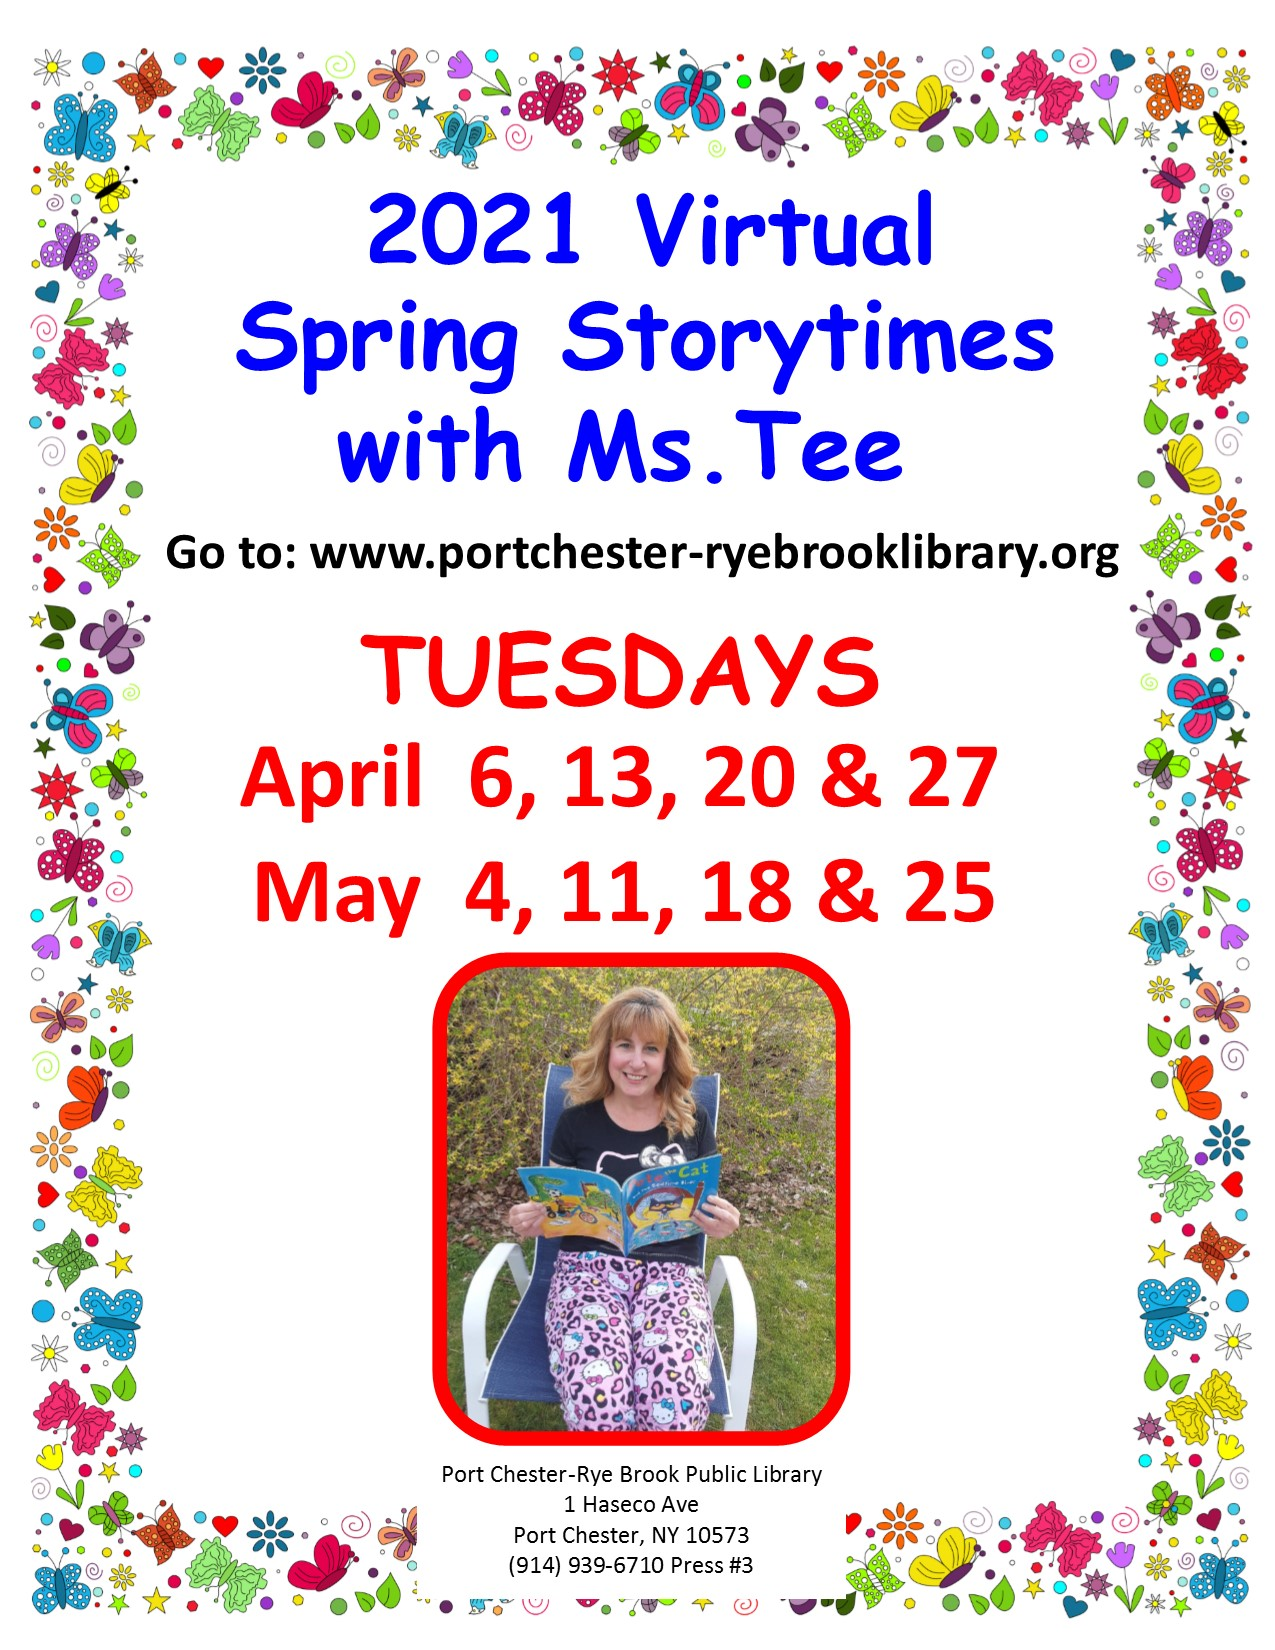 Virtual Spring Storytime with Ms. Tee at Port Chester-Rye Brook Library